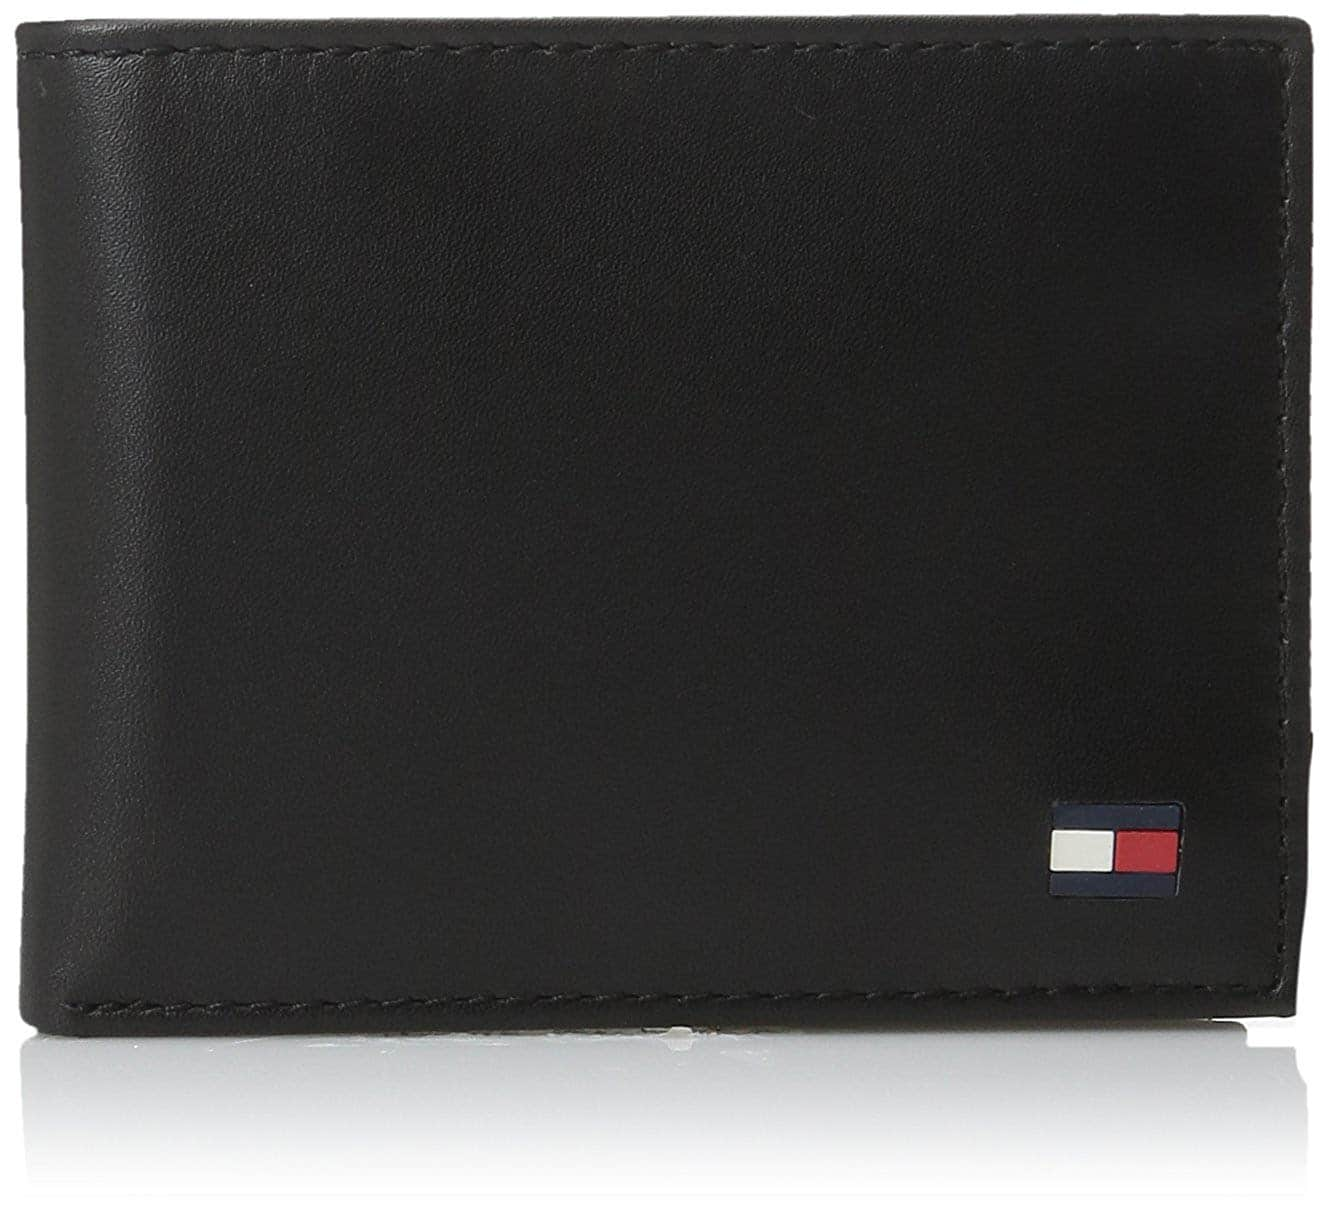 04fd69ccf 2 for 1 - Tommy Hilfiger Men s Leather Dore Passcase Billfold Wallet for   18.50